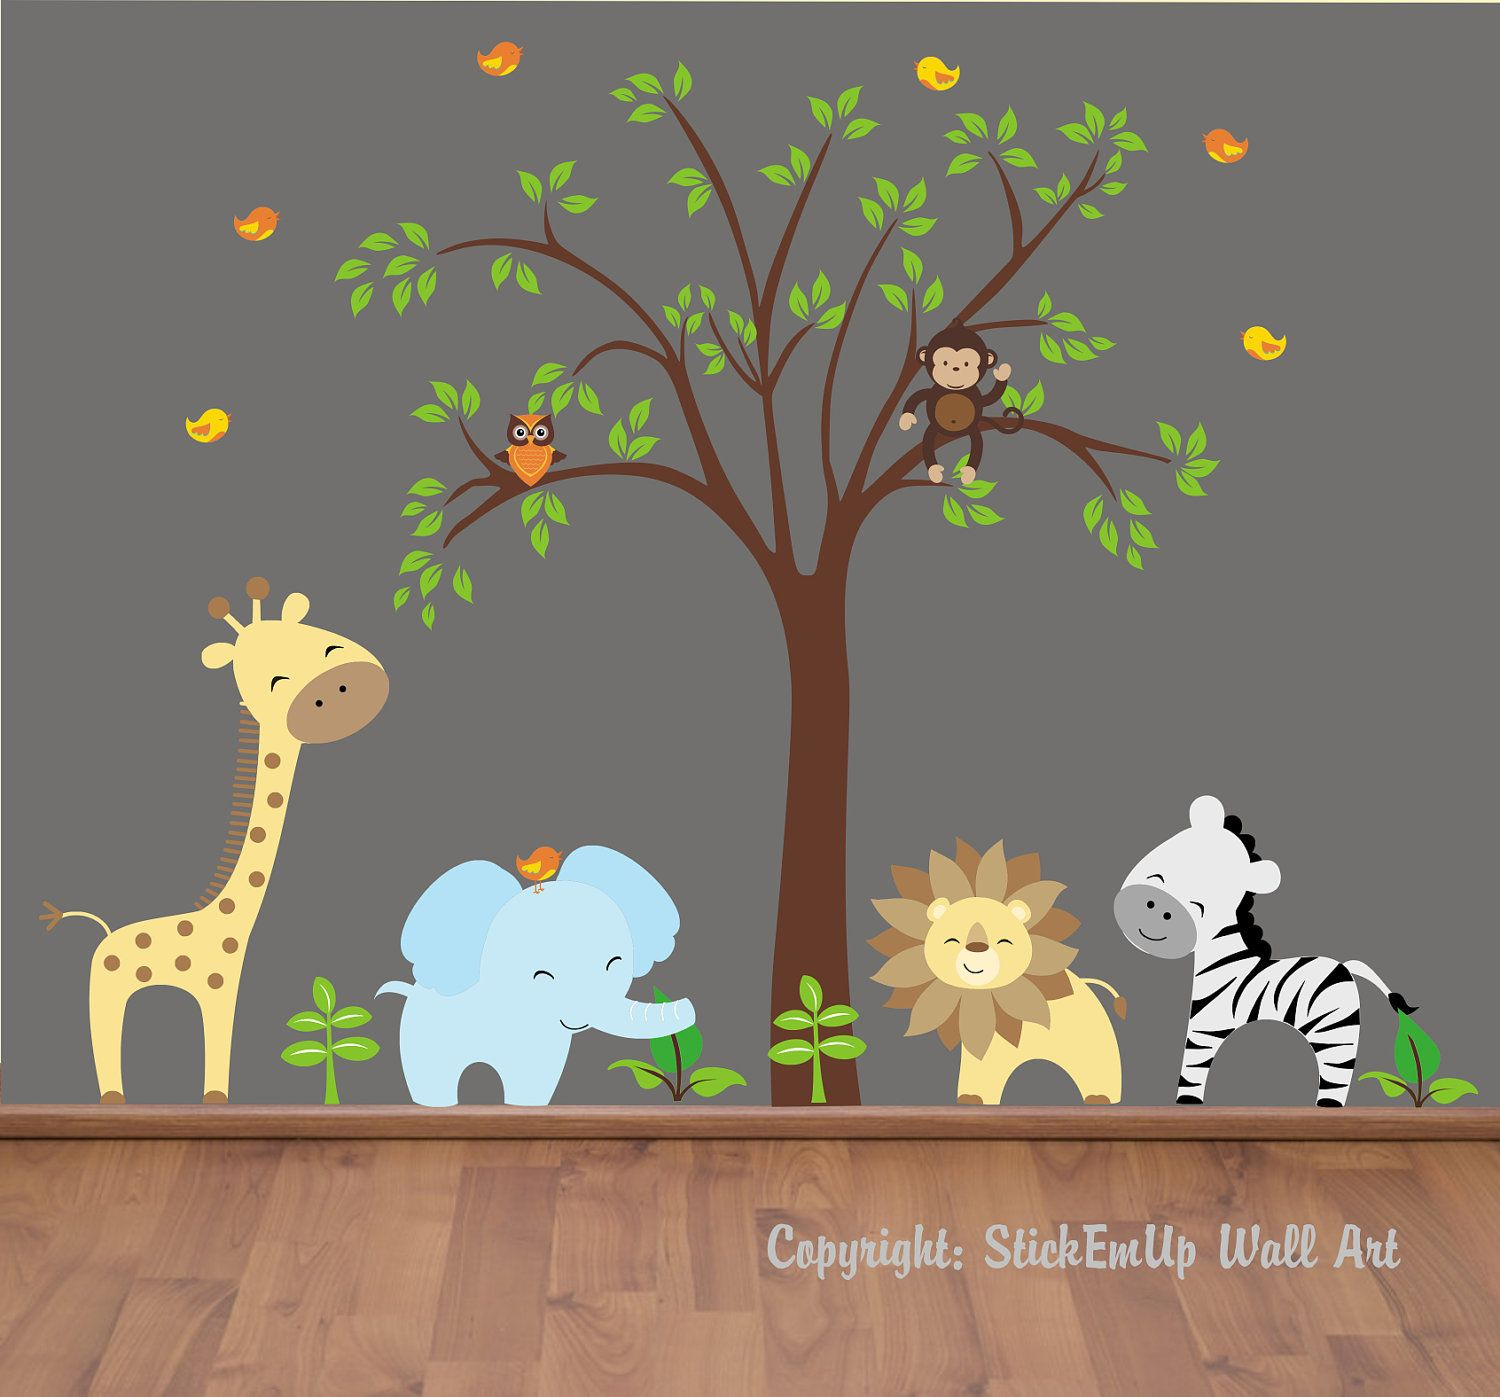 Baby Wall Decals Nursery Wall Decals Jungle Wall Decals - Wall decals jungle